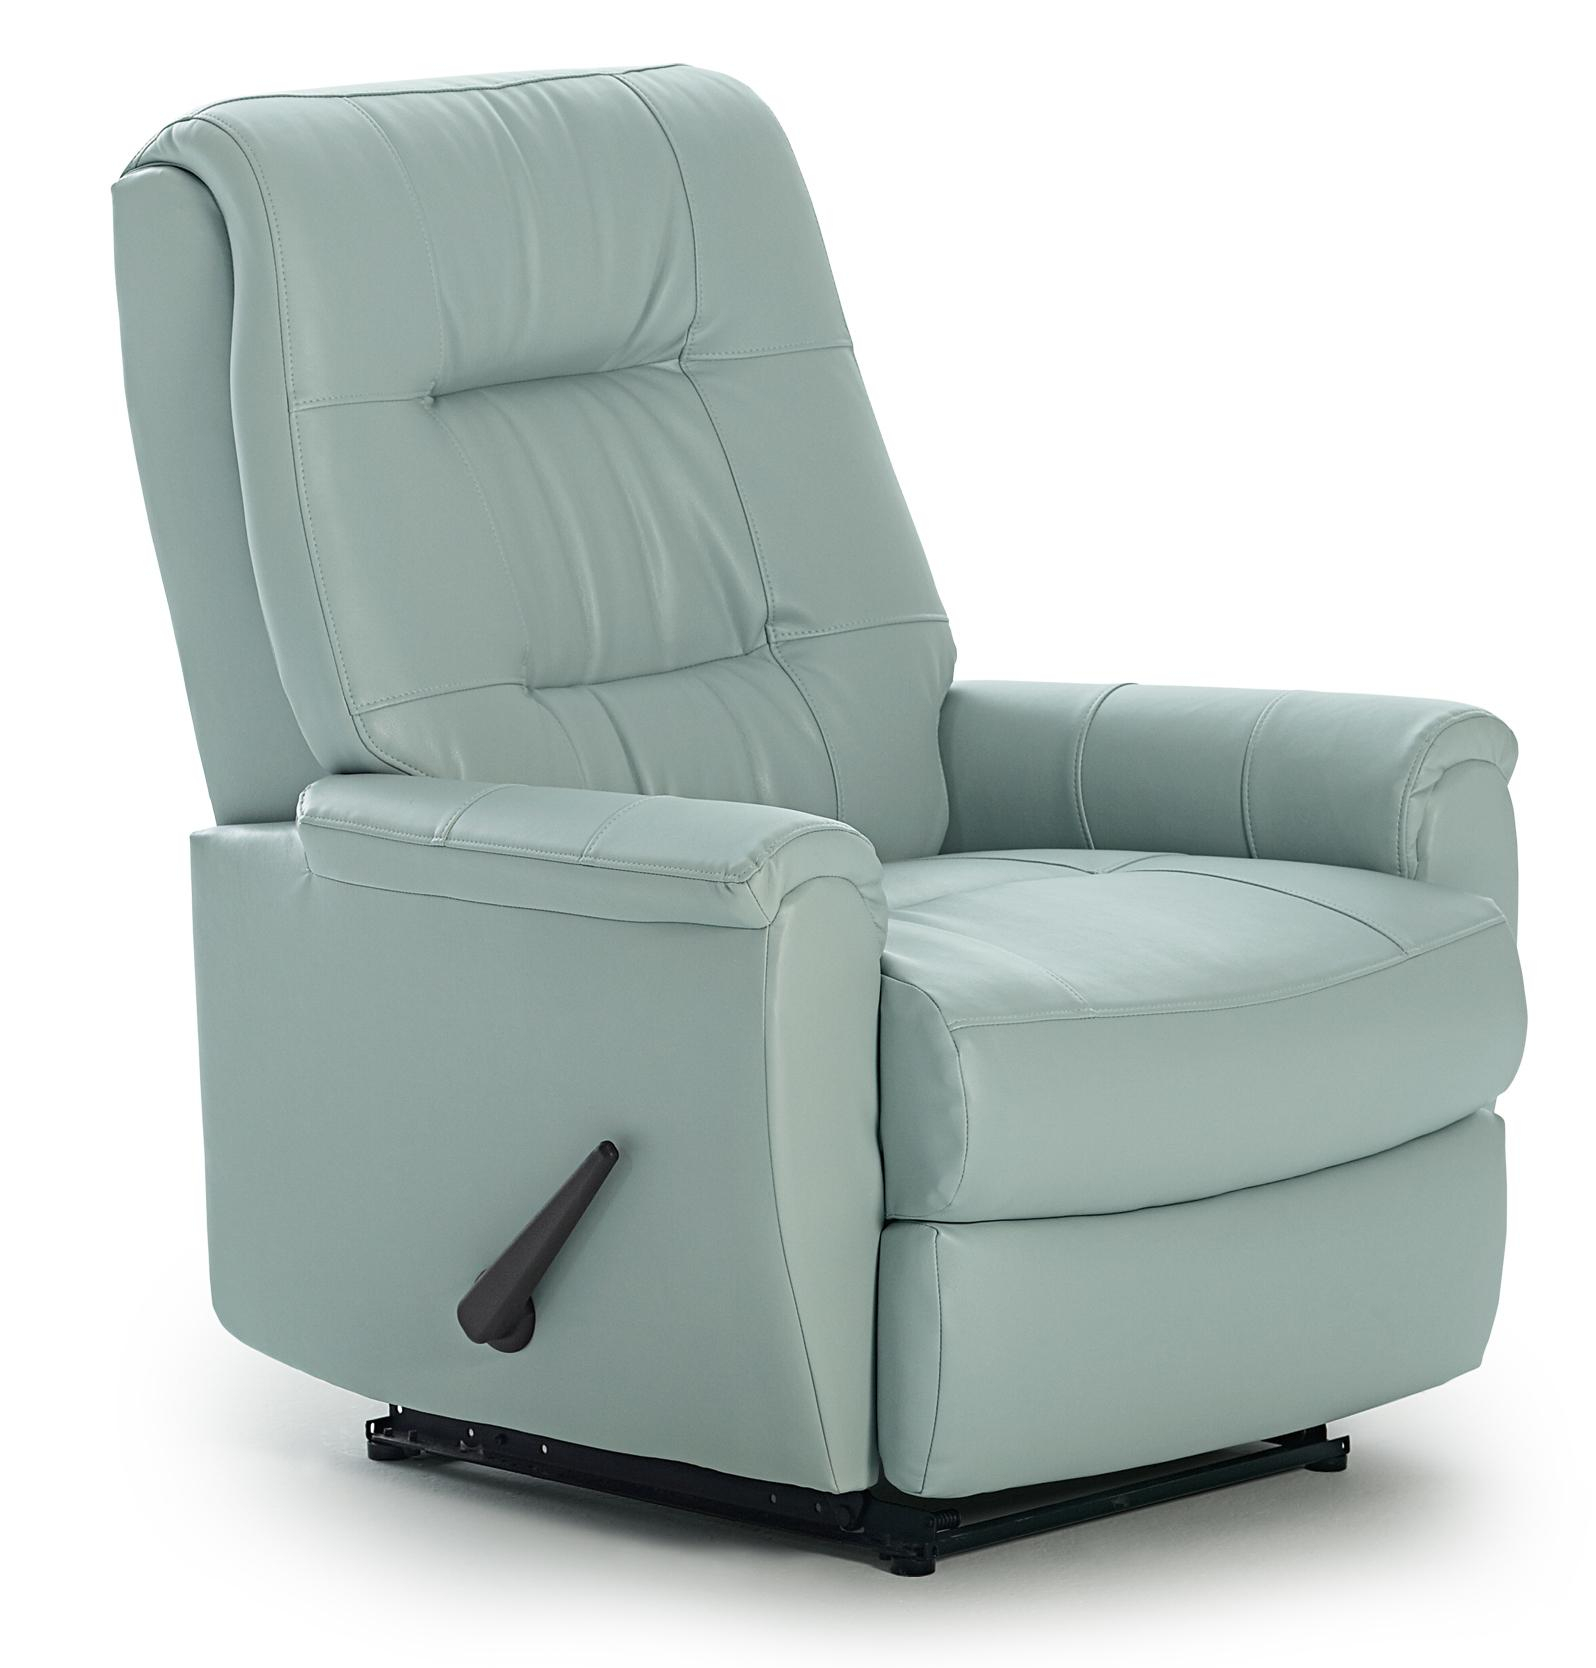 Tips For Selecting The Best Swivel Rocker Recliner Throughout Franco Iii Fabric Swivel Rocker Recliners (View 3 of 25)